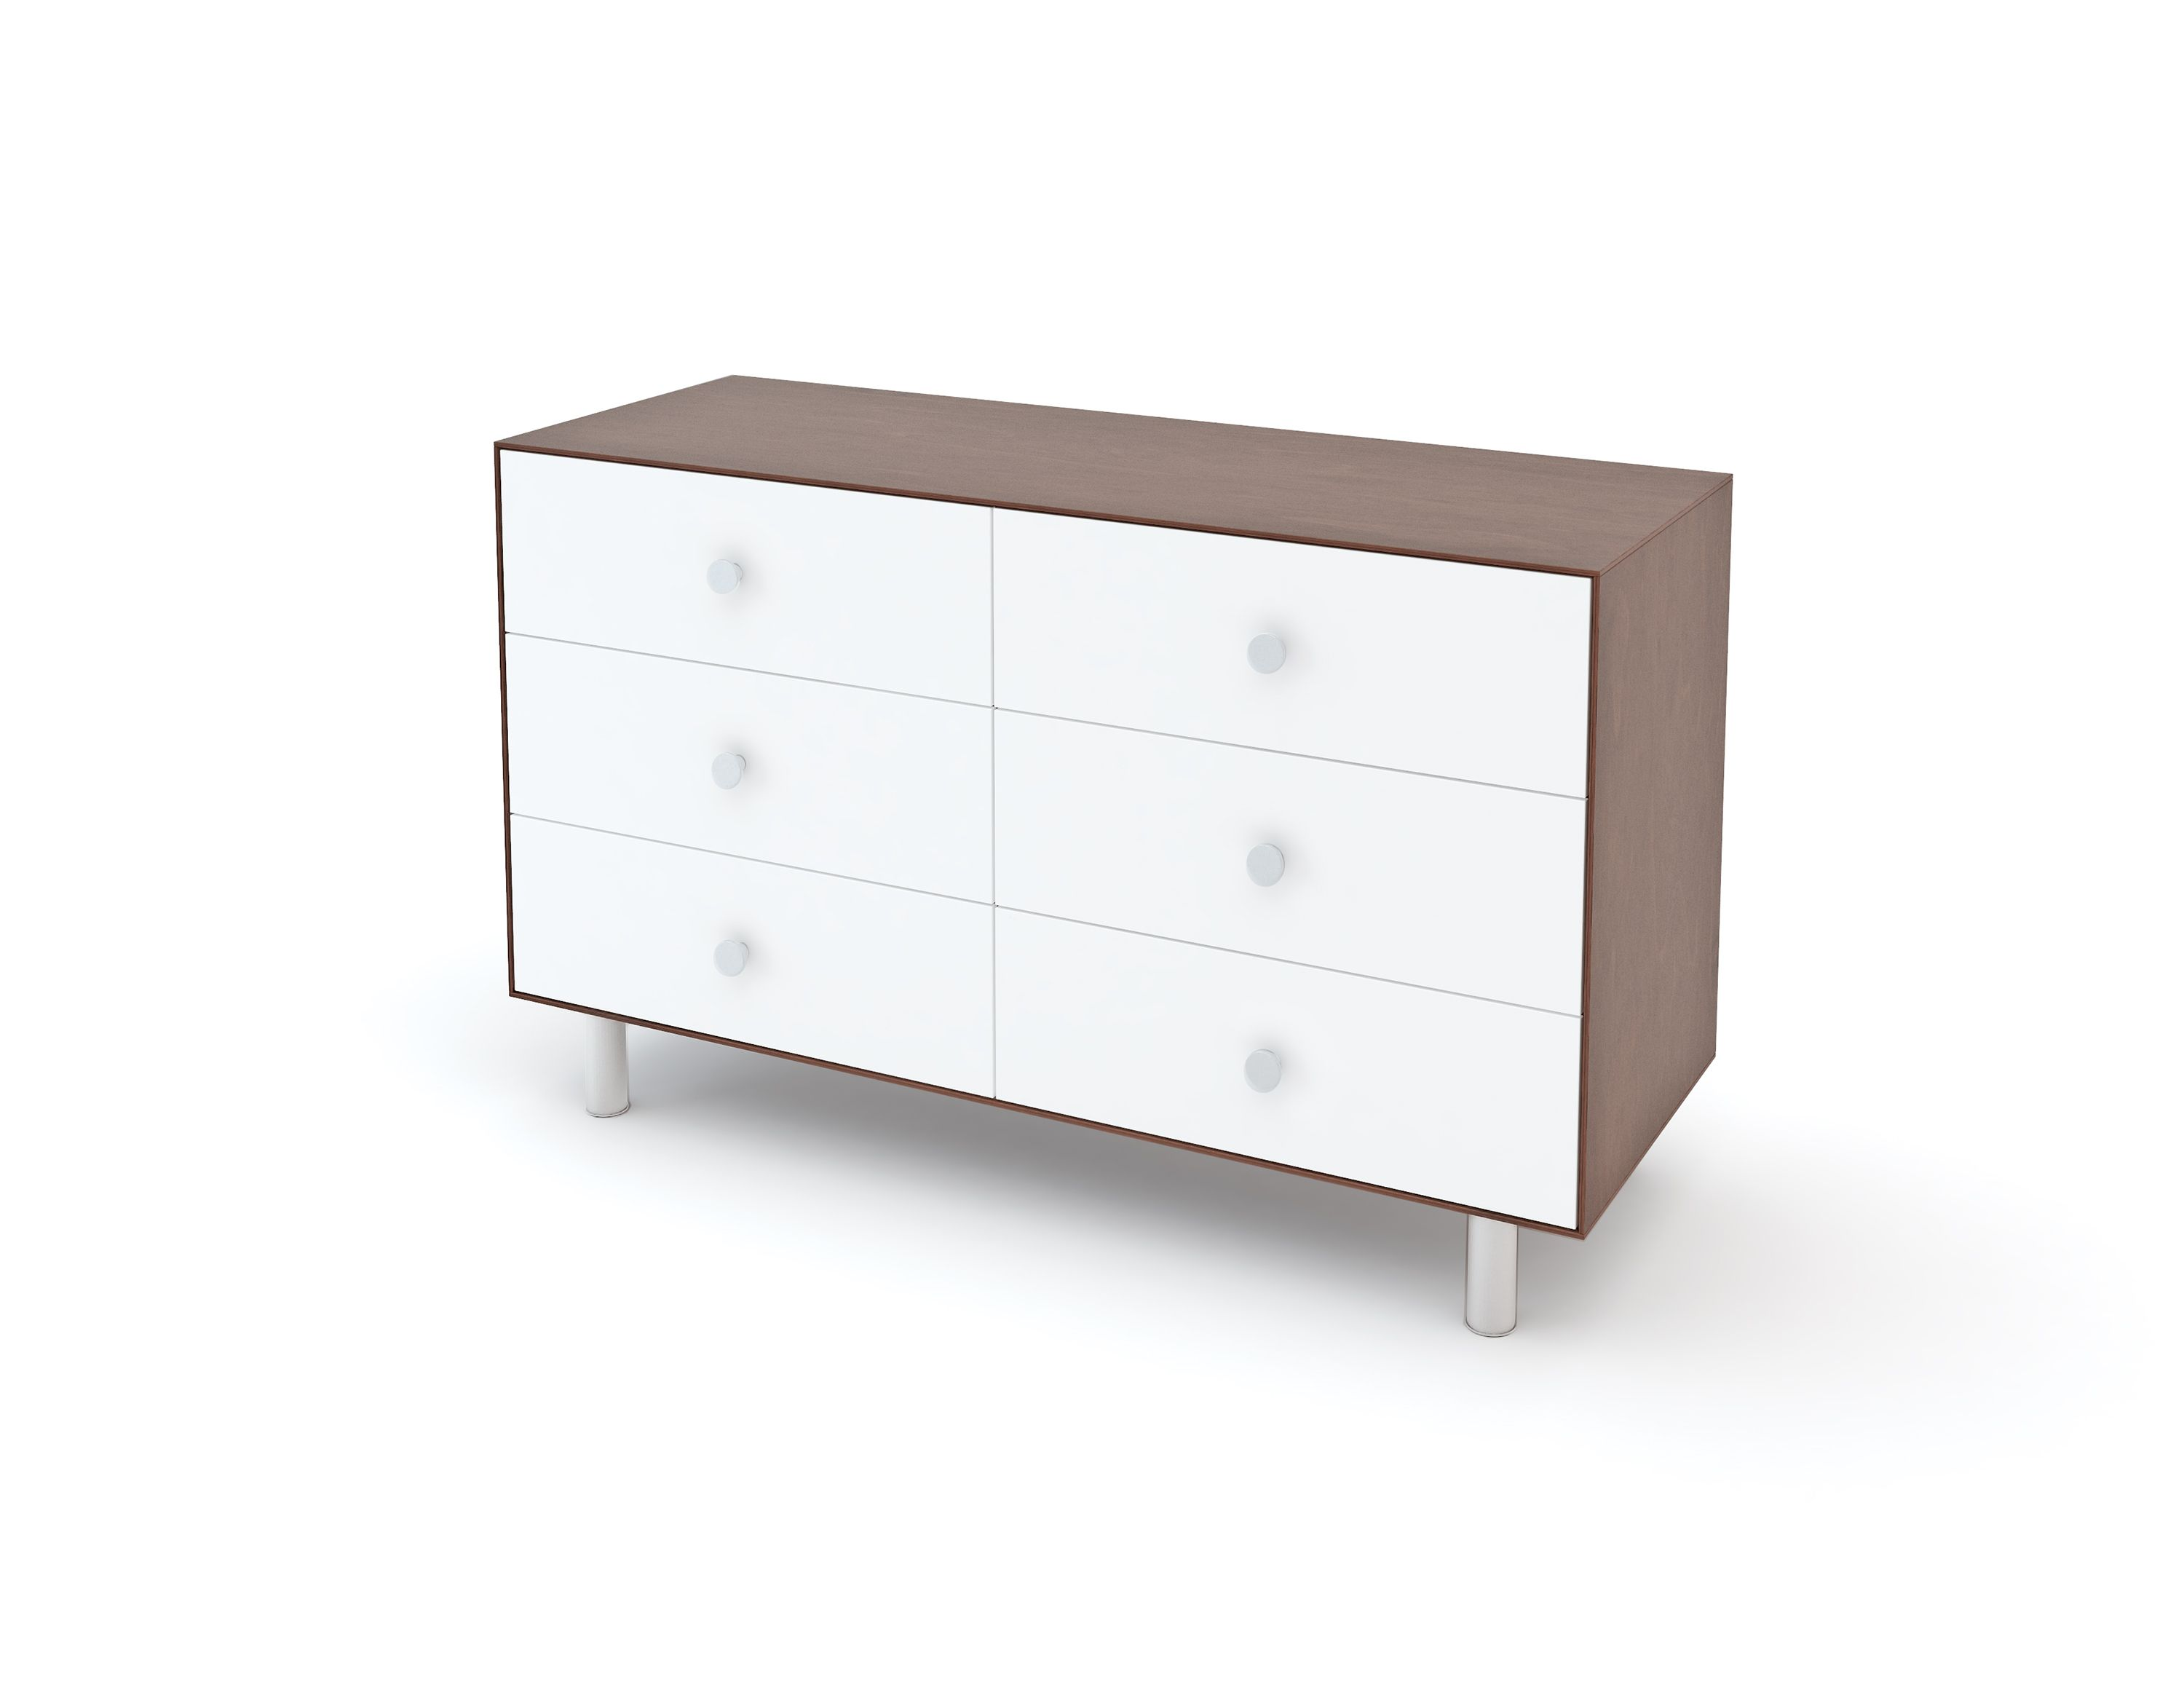 Classic large merlin drawers dresser by oeuf nyc in walnut